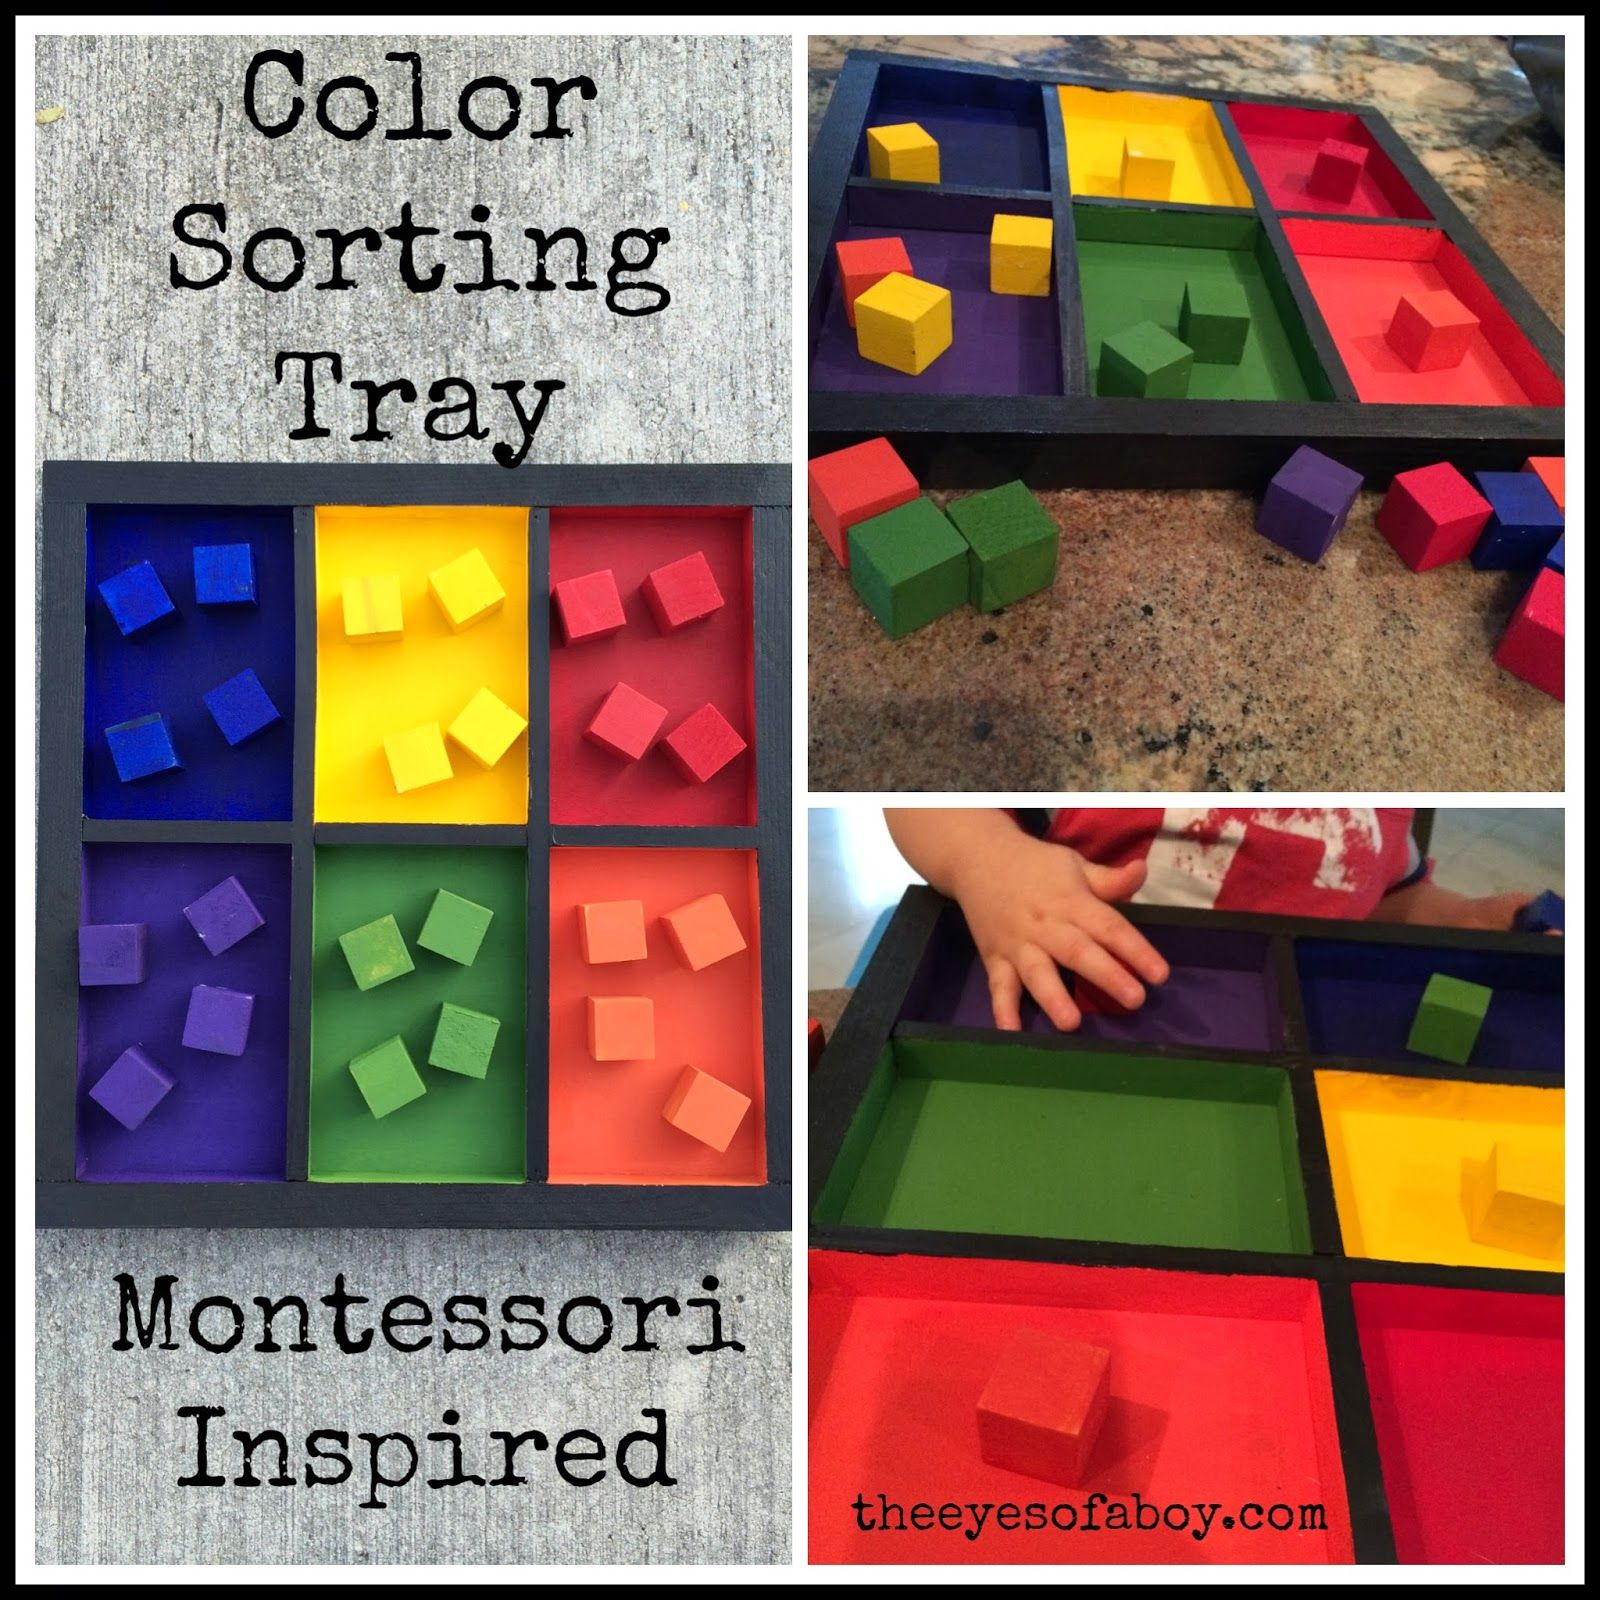 montessori inspired wooden color sorting tray diy learning activity for toddlers and preschoolers - Colour Game For Toddlers